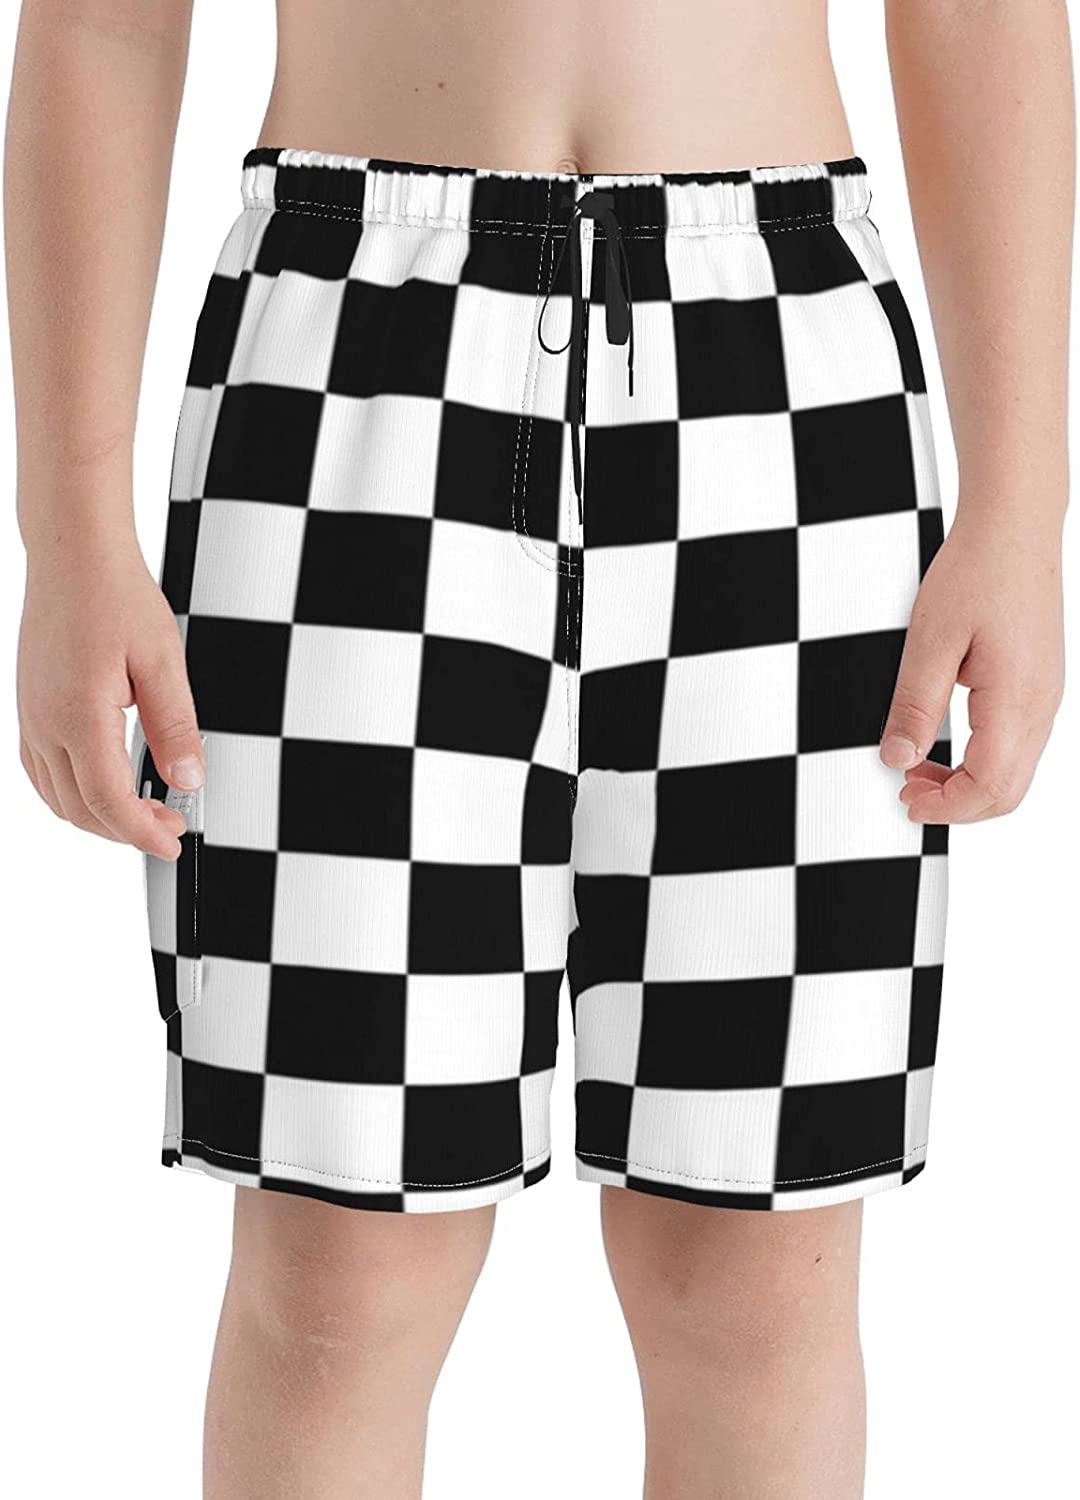 Max 71% OFF Neddelo OFFicial mail order Checkerboard Boys Swim Trunks Beach Boardshorts Teens S